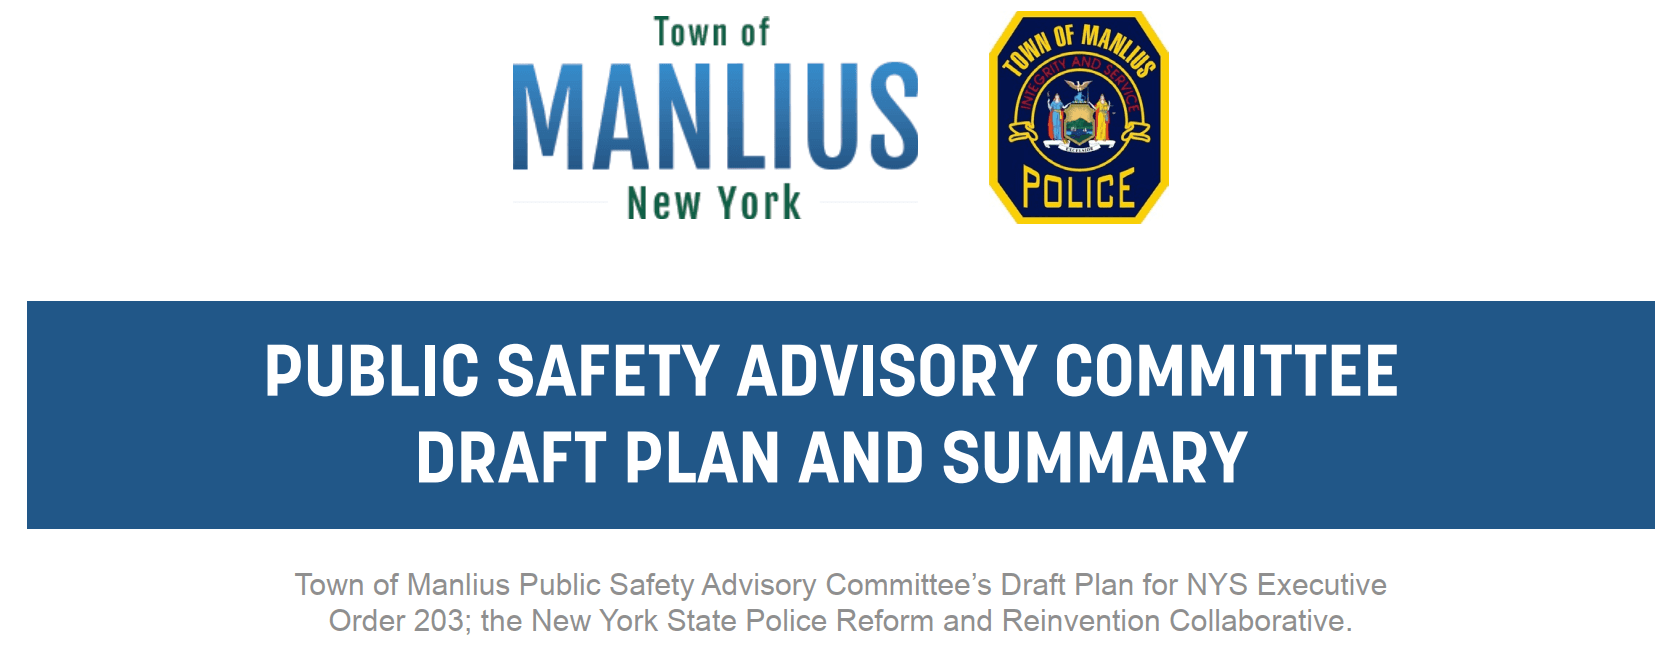 PUBLIC SAFETY ADVISORY COMMITTEE DRAFT PLAN AND SUMMARY